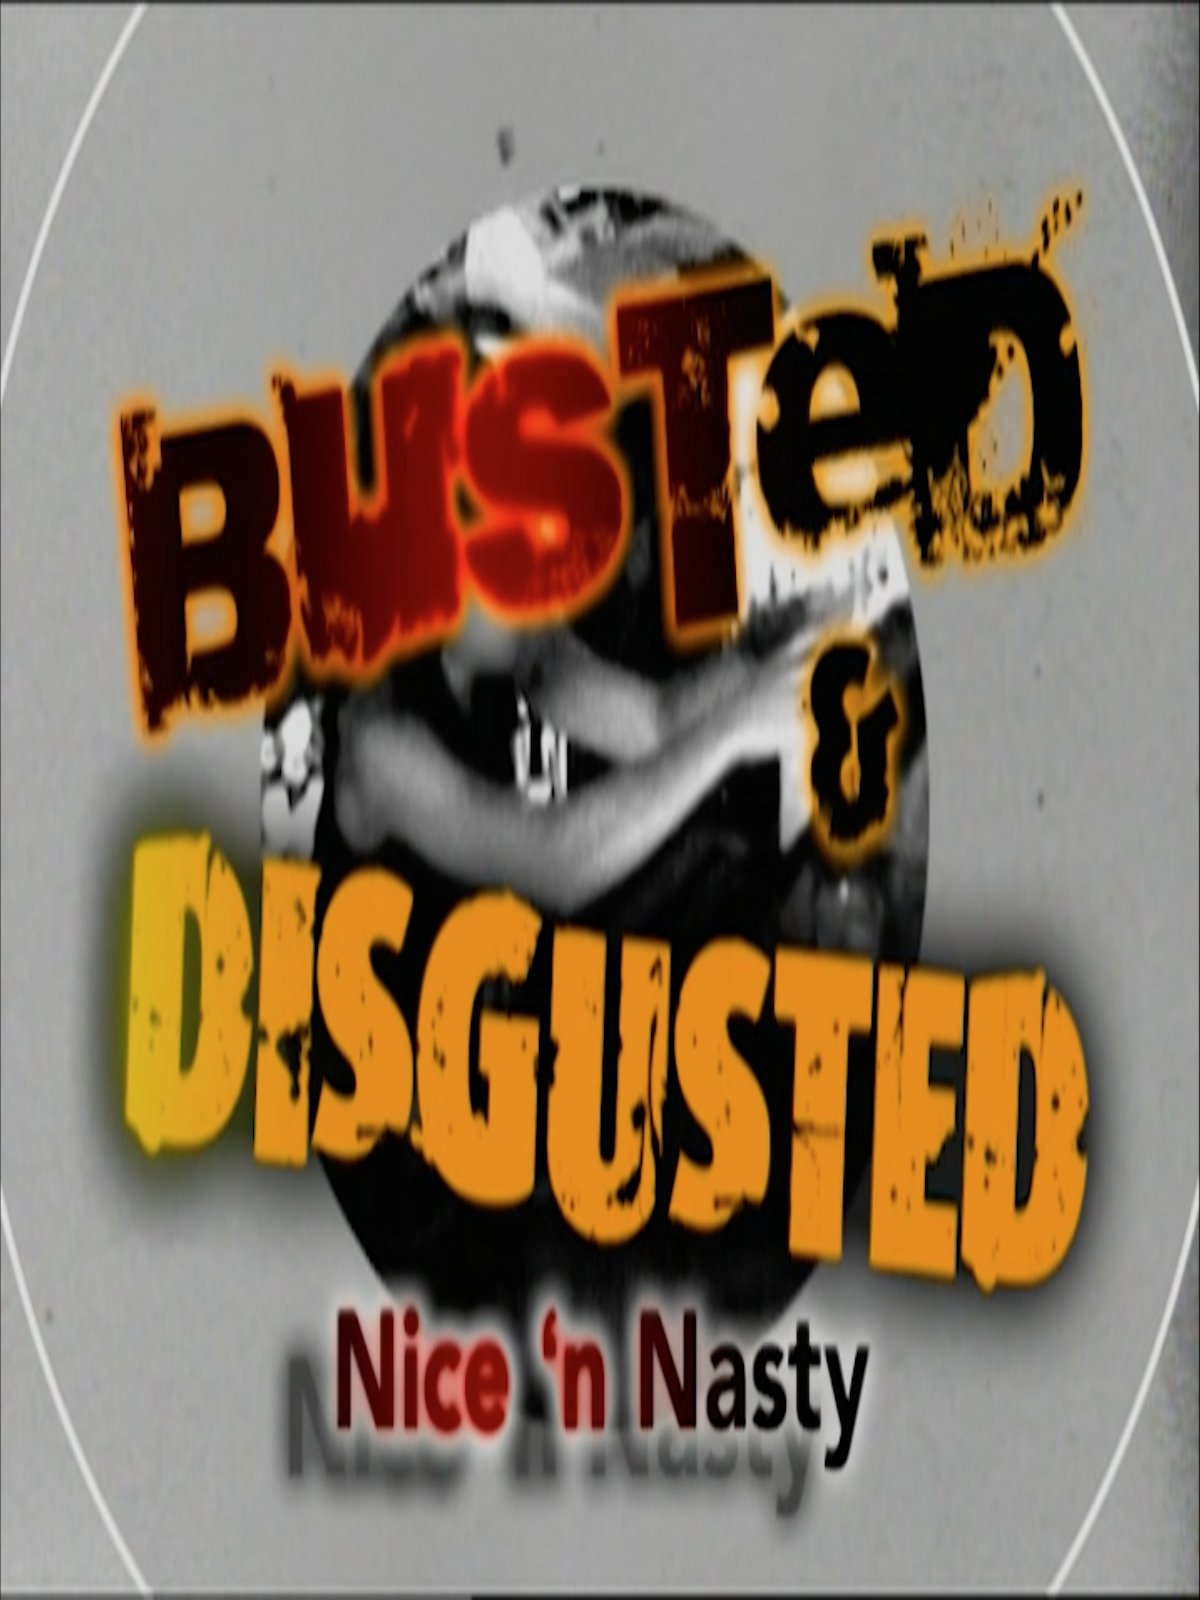 Clip: Busted & Disgusted: Nice and Nasty